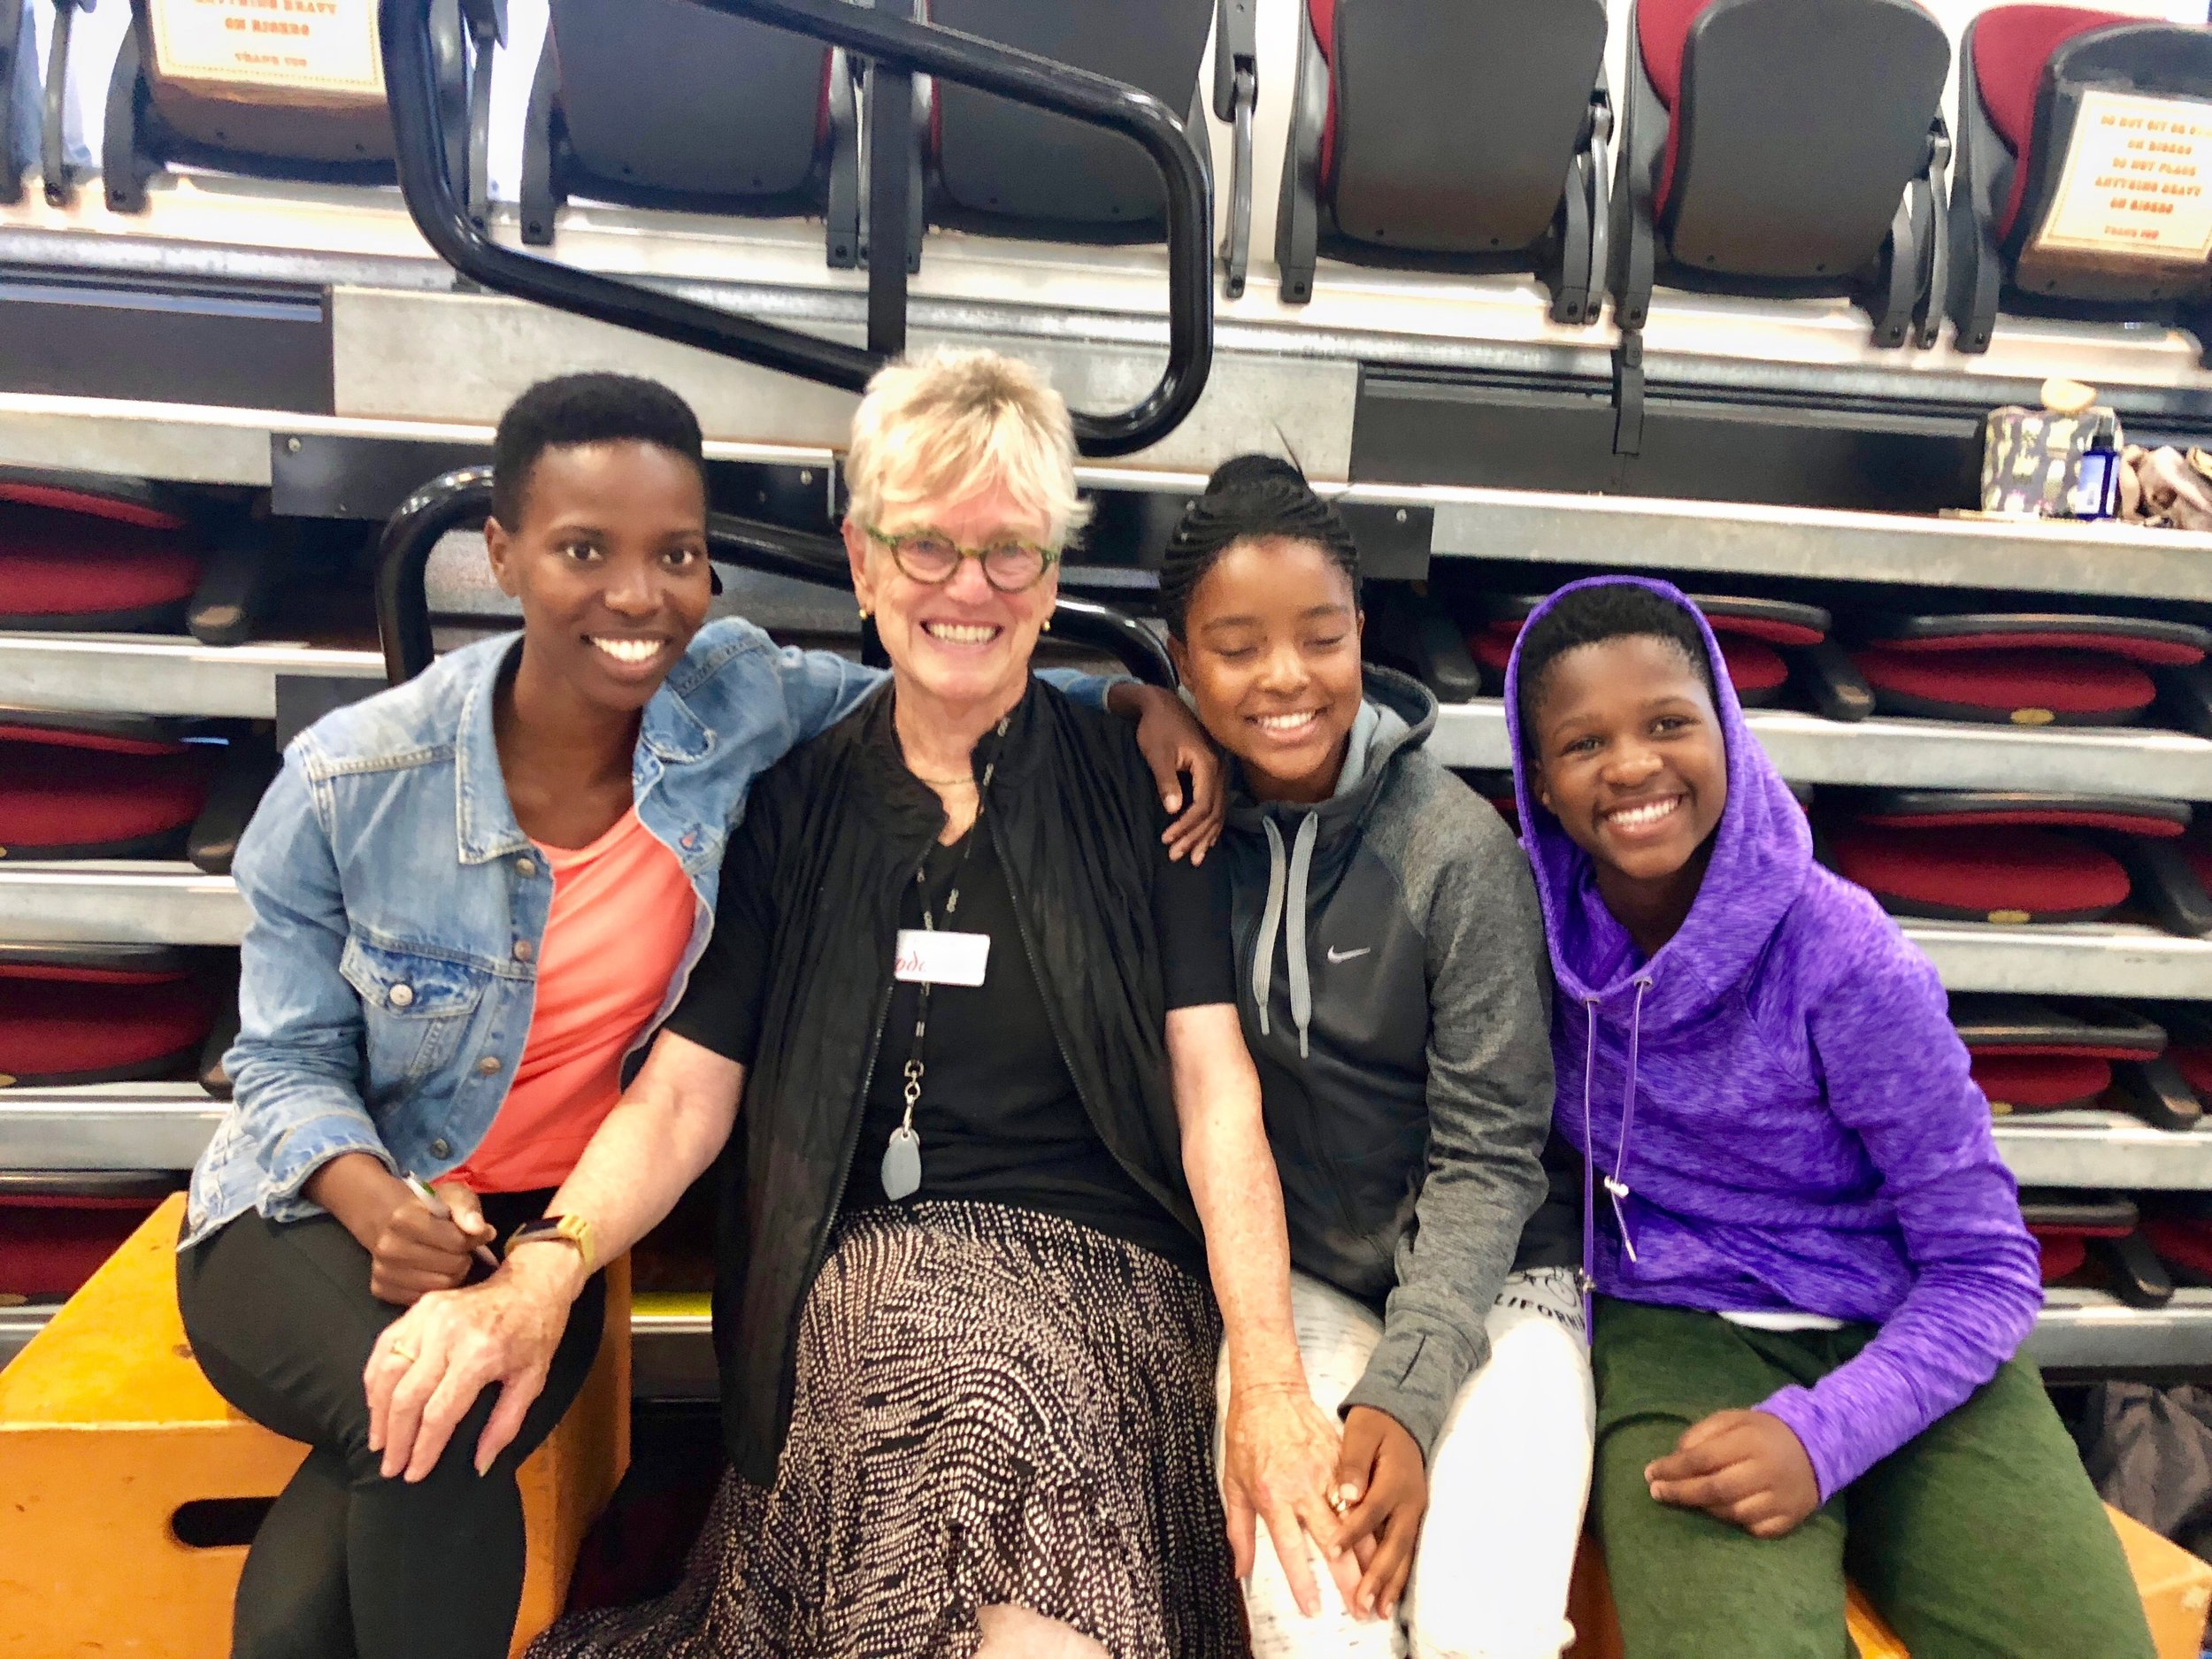 Olwethu with ODC Founder and Artistic Director Brenda Way and fellow 2018 Project Relevé recipients Linathi Louw and Thimna Ndwe.